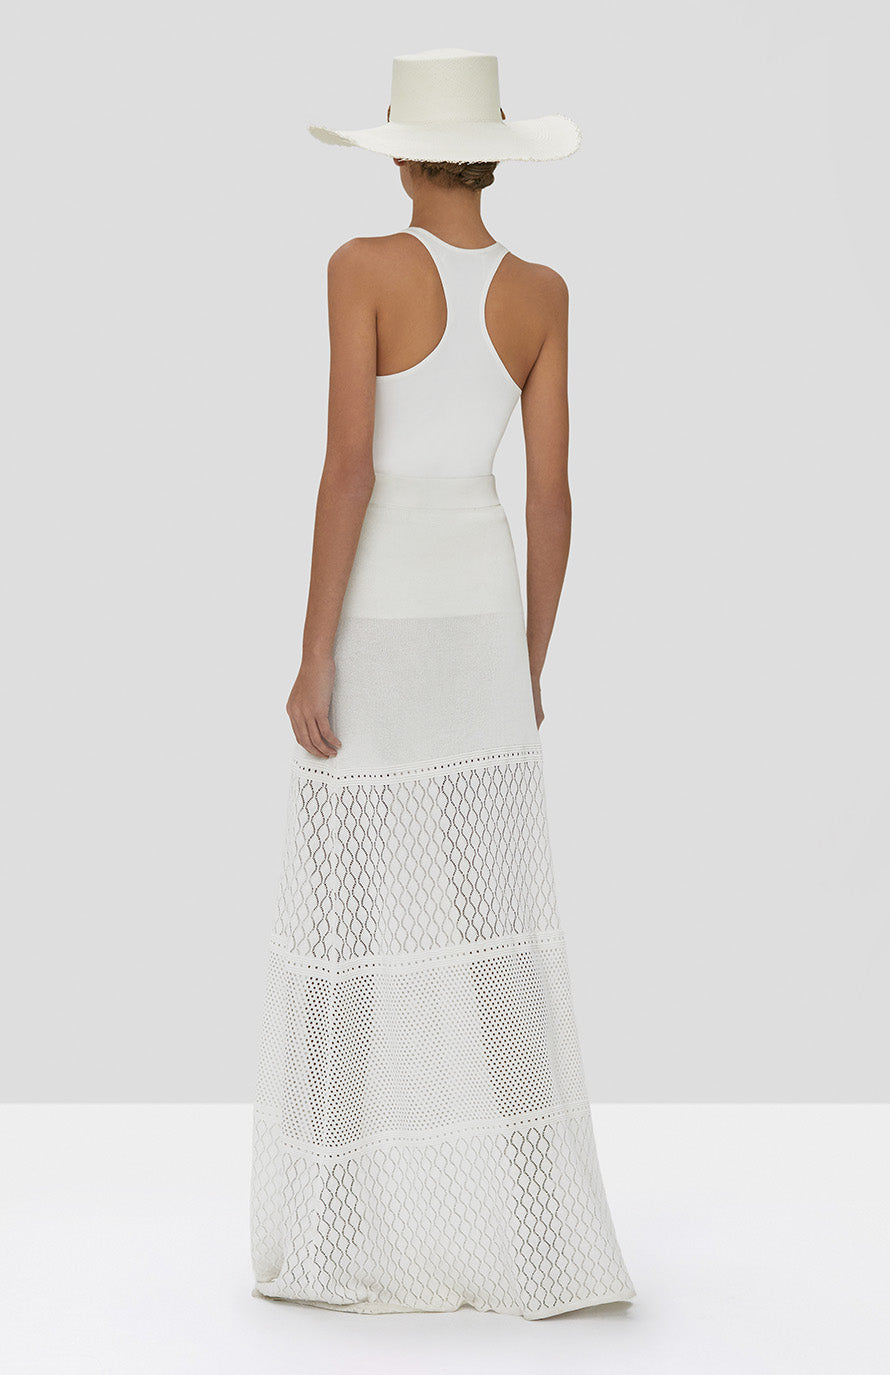 Alexis Ecco Skirt in White and Zeni Top in White from Spring Summer 2020 Collection - Rear View